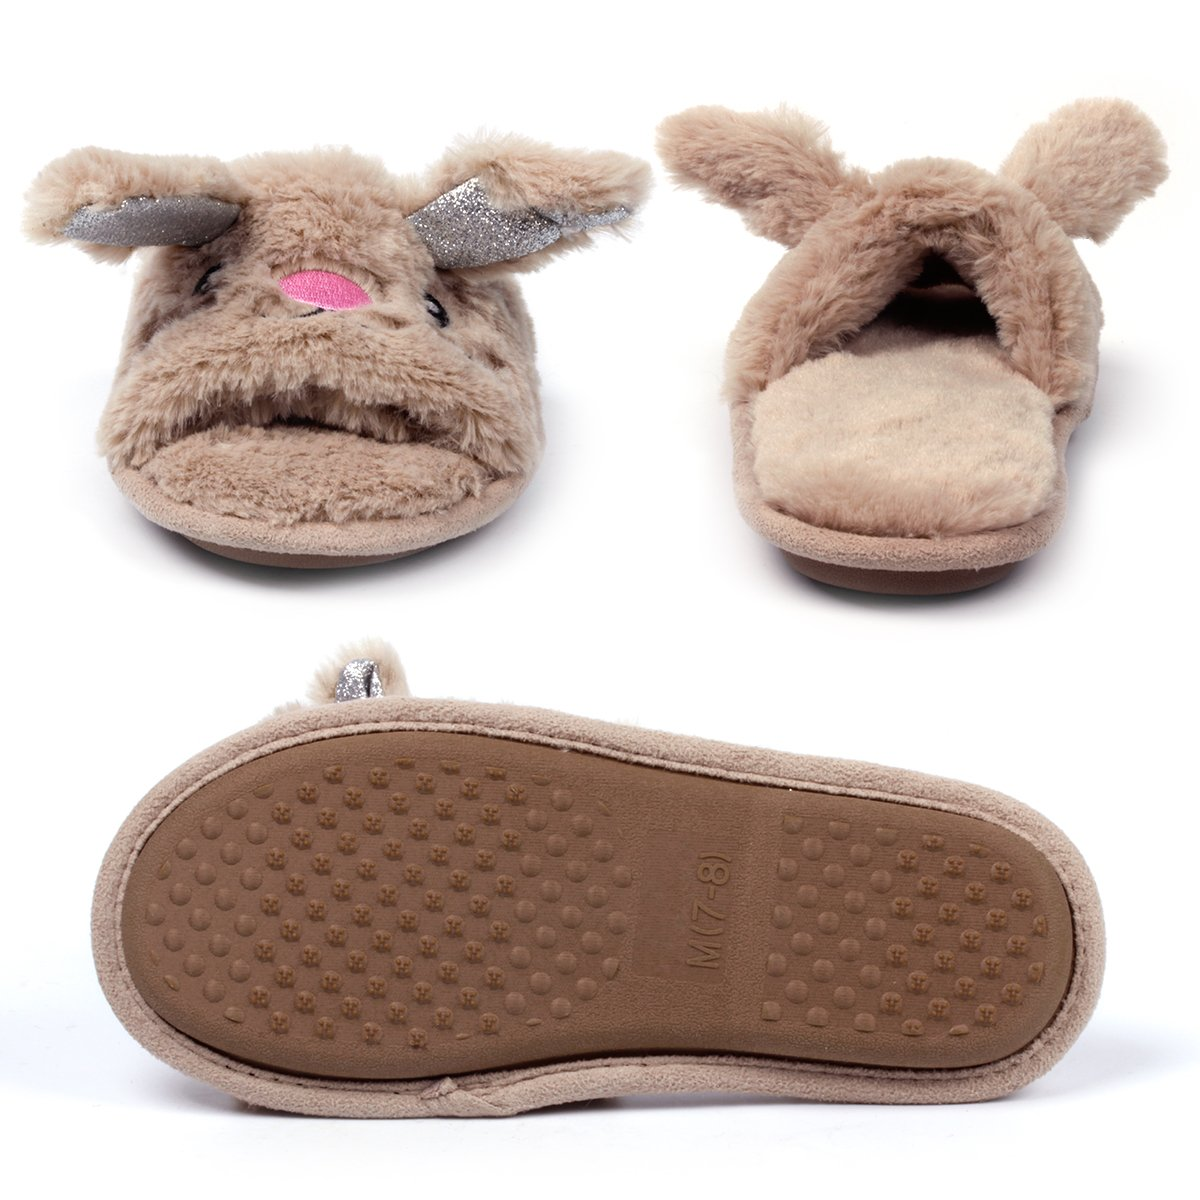 Womens Open Toe Slippers | Cute Bunny Unicorn Animal Slipper | Soft Fleece Memory Foam Clog | Anti-Slip Sole Indoor Outdoor Shoes | Flip Flop Spa Slippers (9-10, BrownBunny) by Caramella Bubble (Image #10)